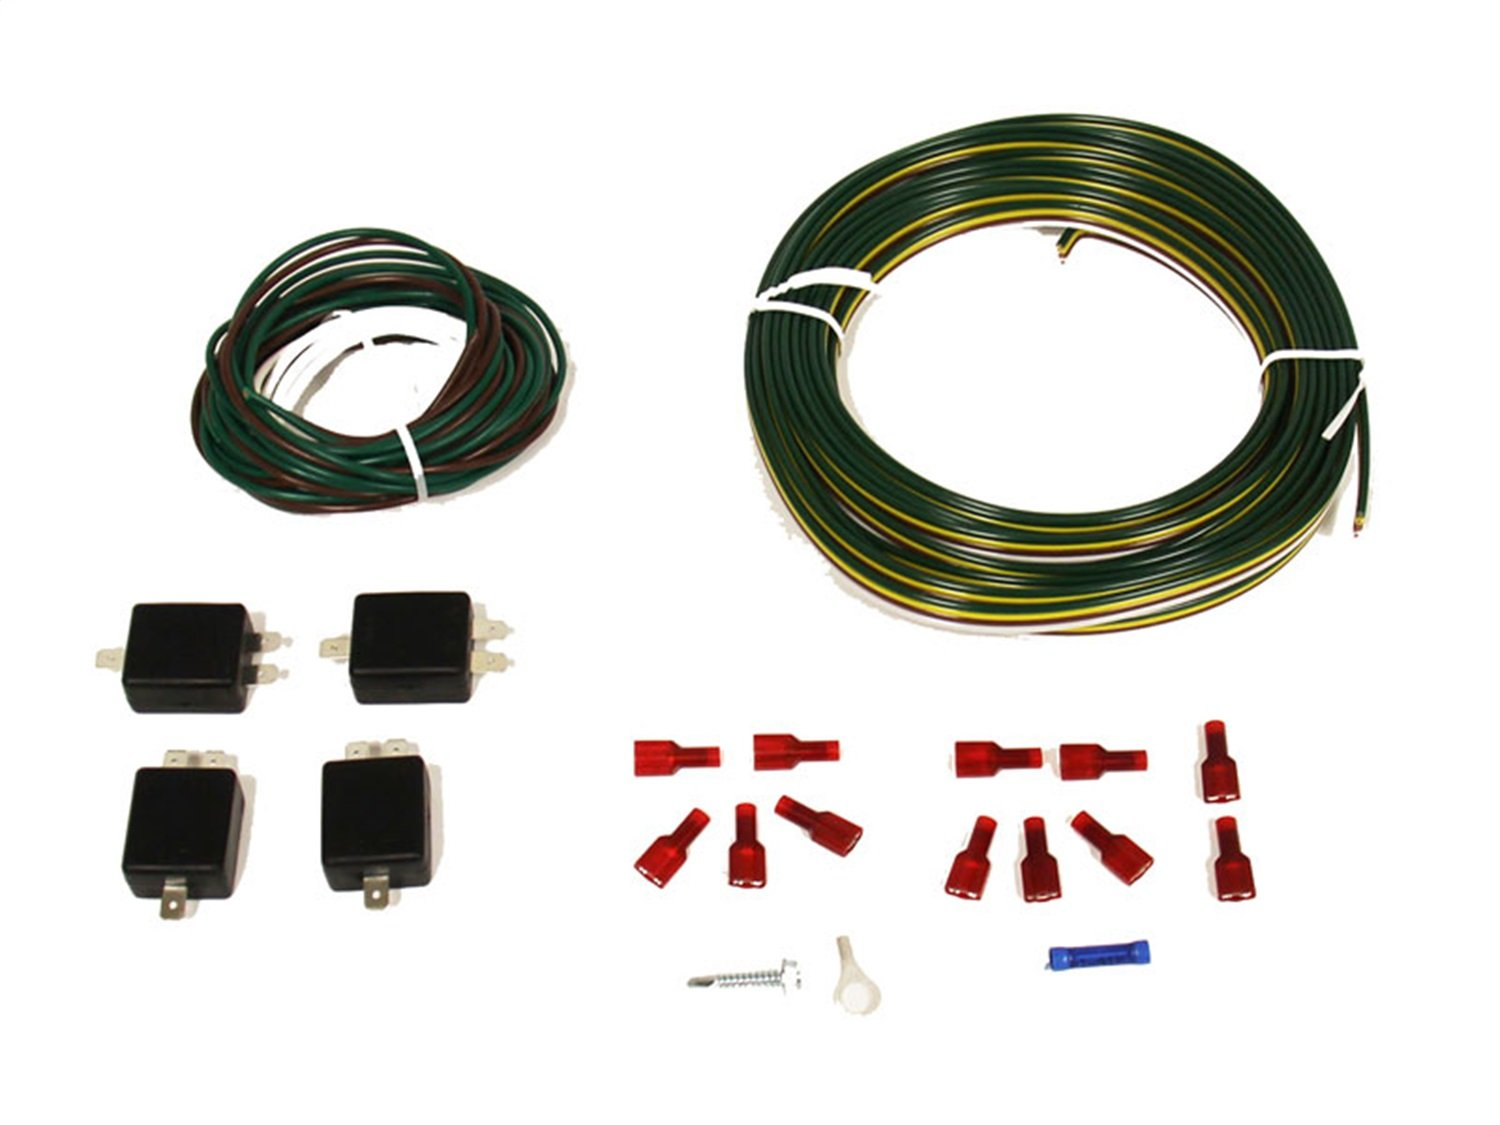 Blue Ox Bx8848 4 Diodes Taillight Wiring Kit Towing Products Roadmaster Tail Light For Towed Vehicles Led Bulb And Winches Amazon Canada